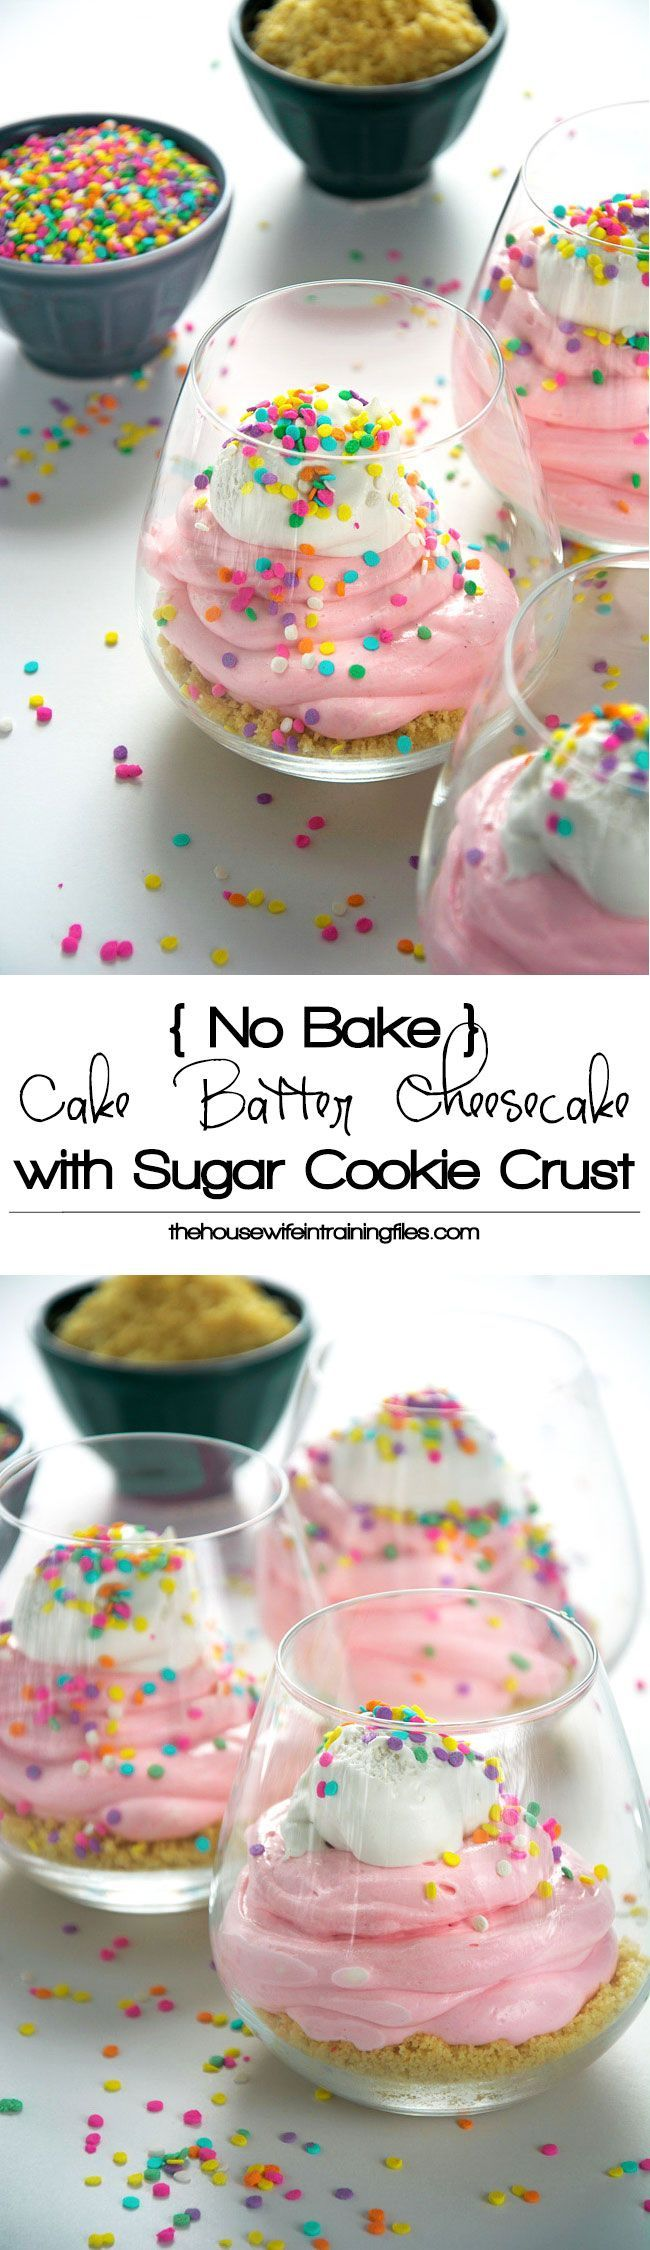 An easy, no bake cake batter cheesecake is healthy and simple to make with greek yogurt, low fat cream cheese, sprinkles and a buttery sugar cookie crust